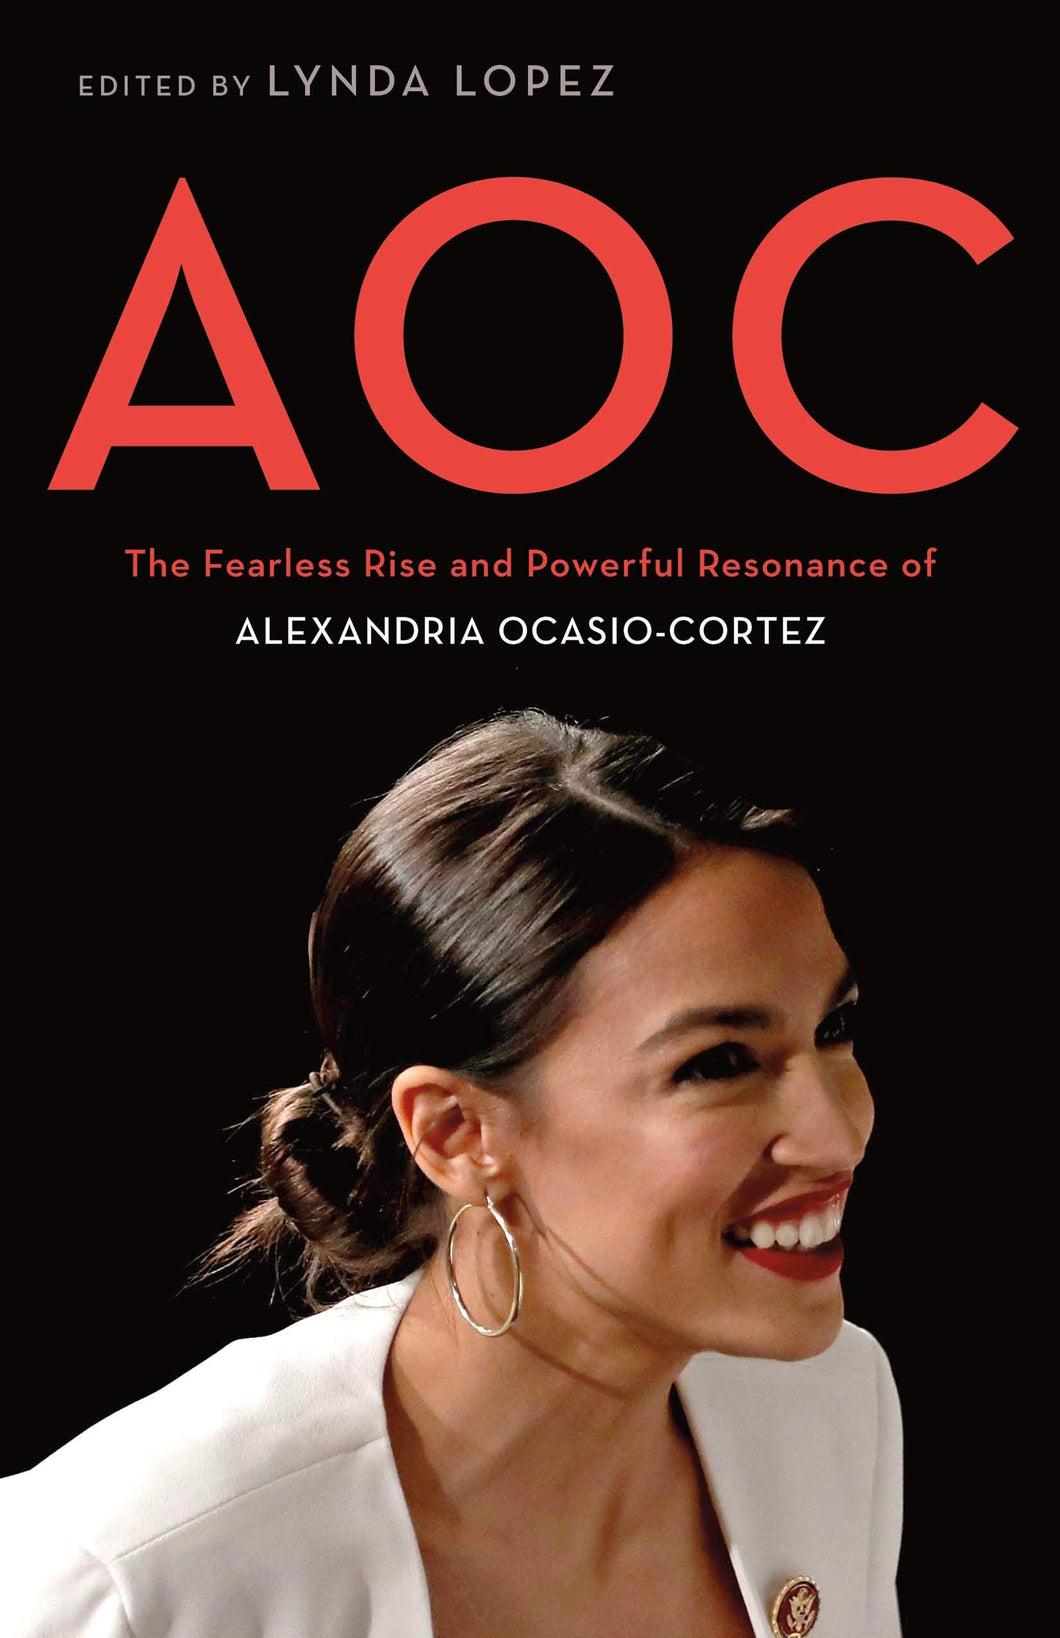 AOC: The Fearless Rise and Powerful Resonance of Alexandria Ocasio-Cortez